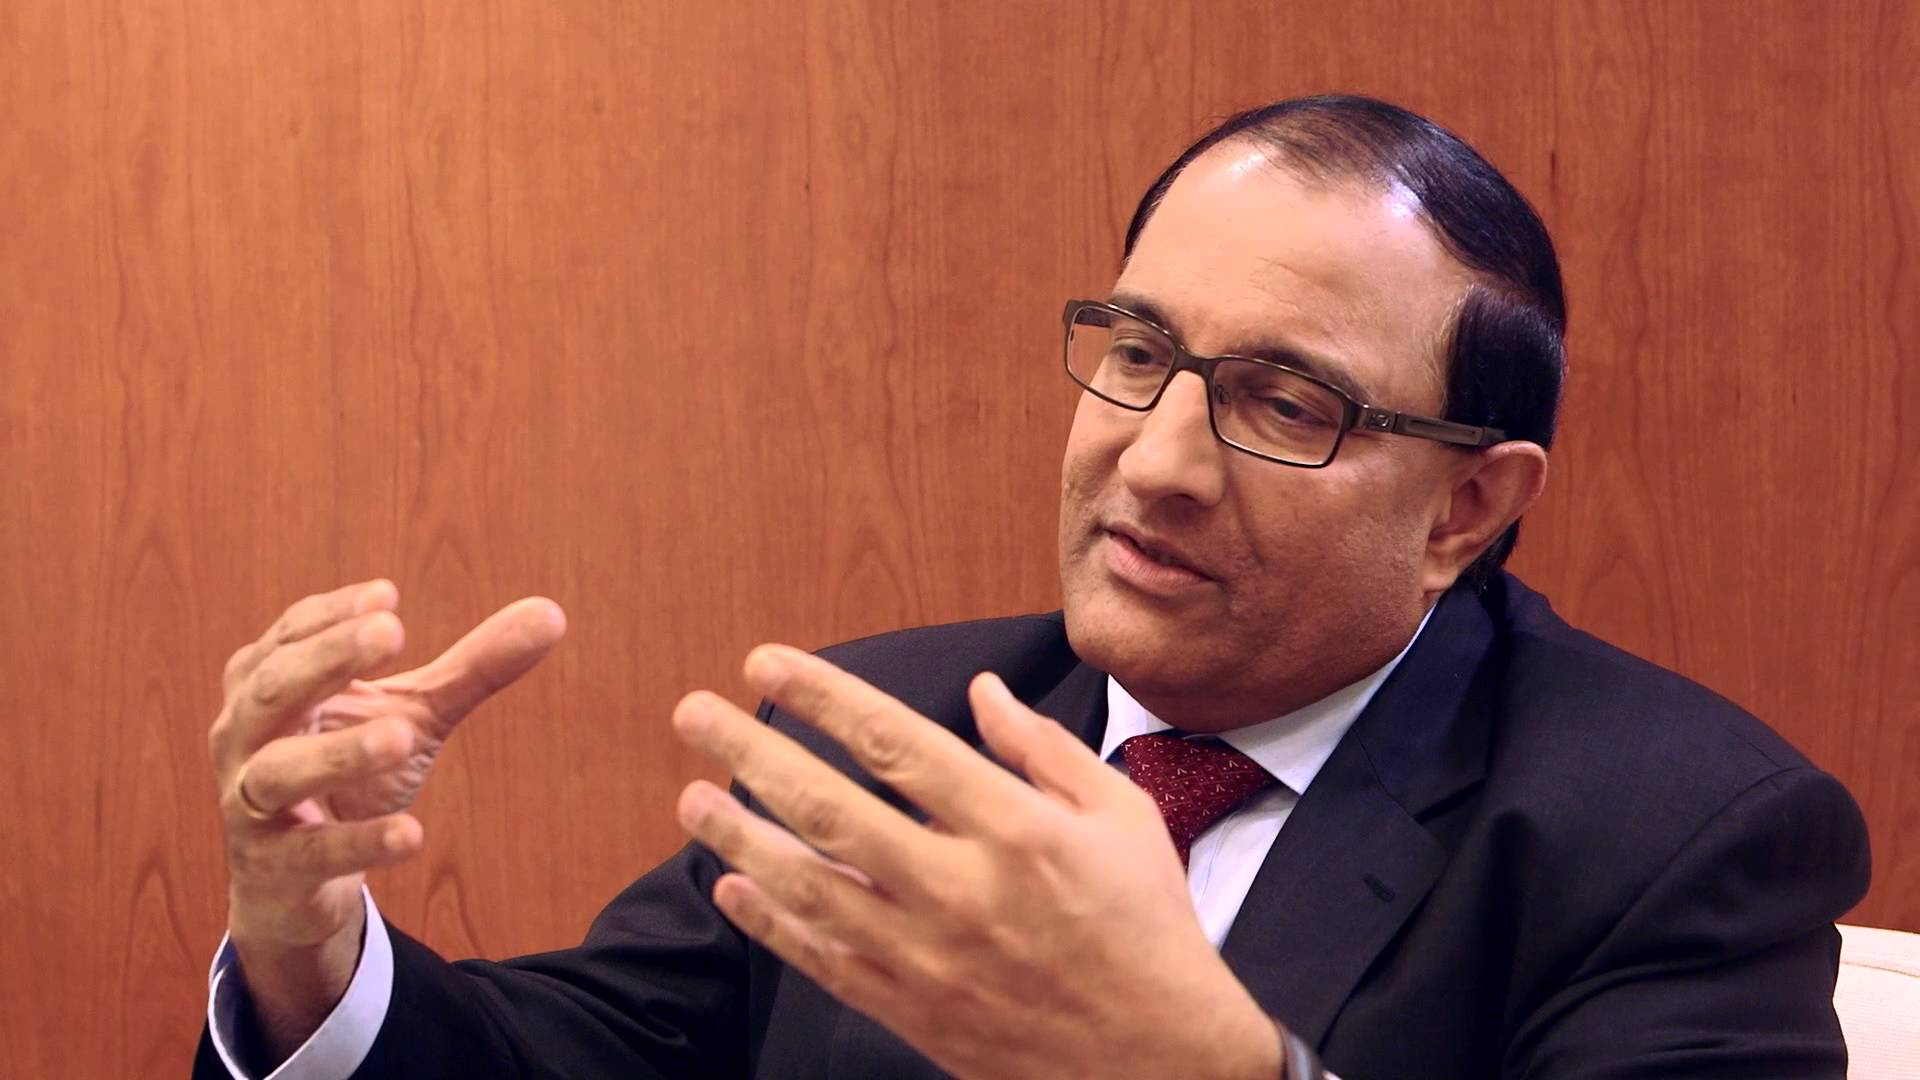 S Iswaran, Minister for Trade and Industry (Industry) of Singapore